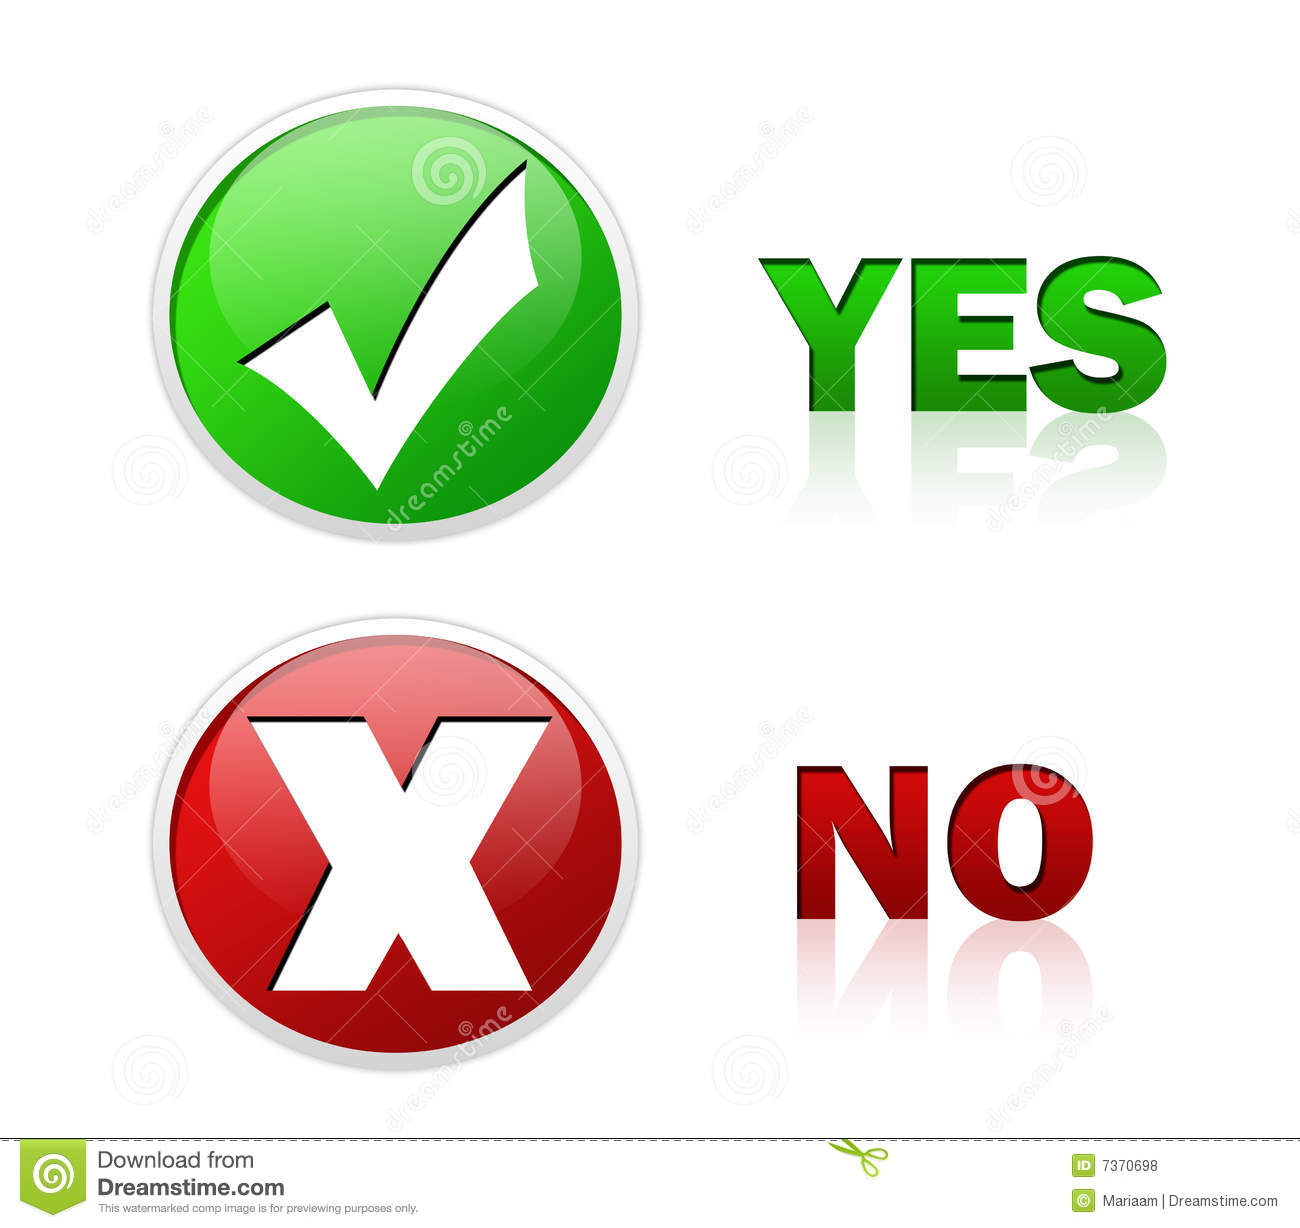 Button clipart yes and no Yes clipart 123 – 16